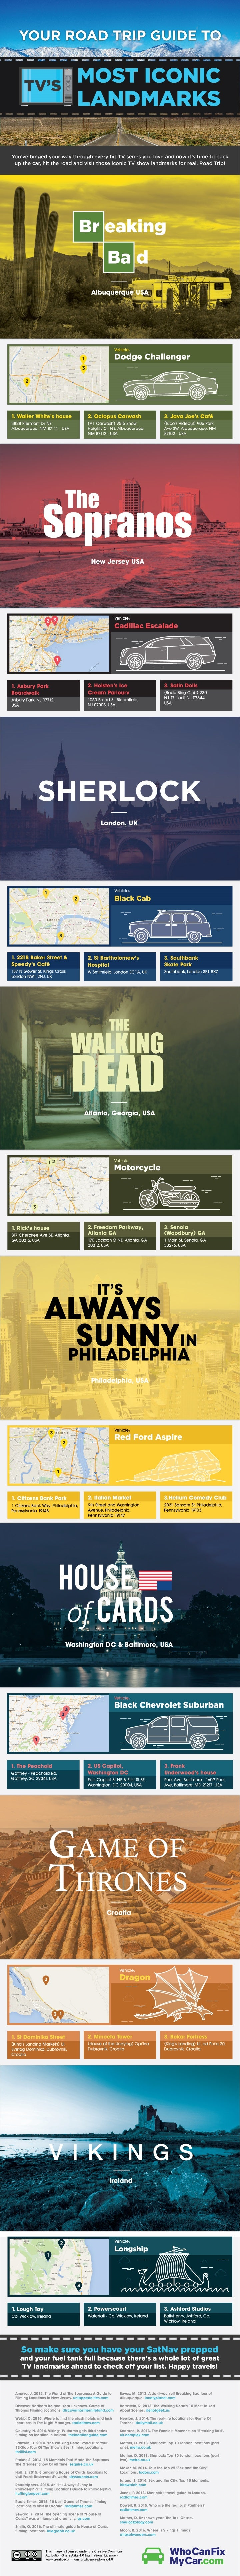 A Visual Guide to Famous TV Show Landmarks and Filming Locations